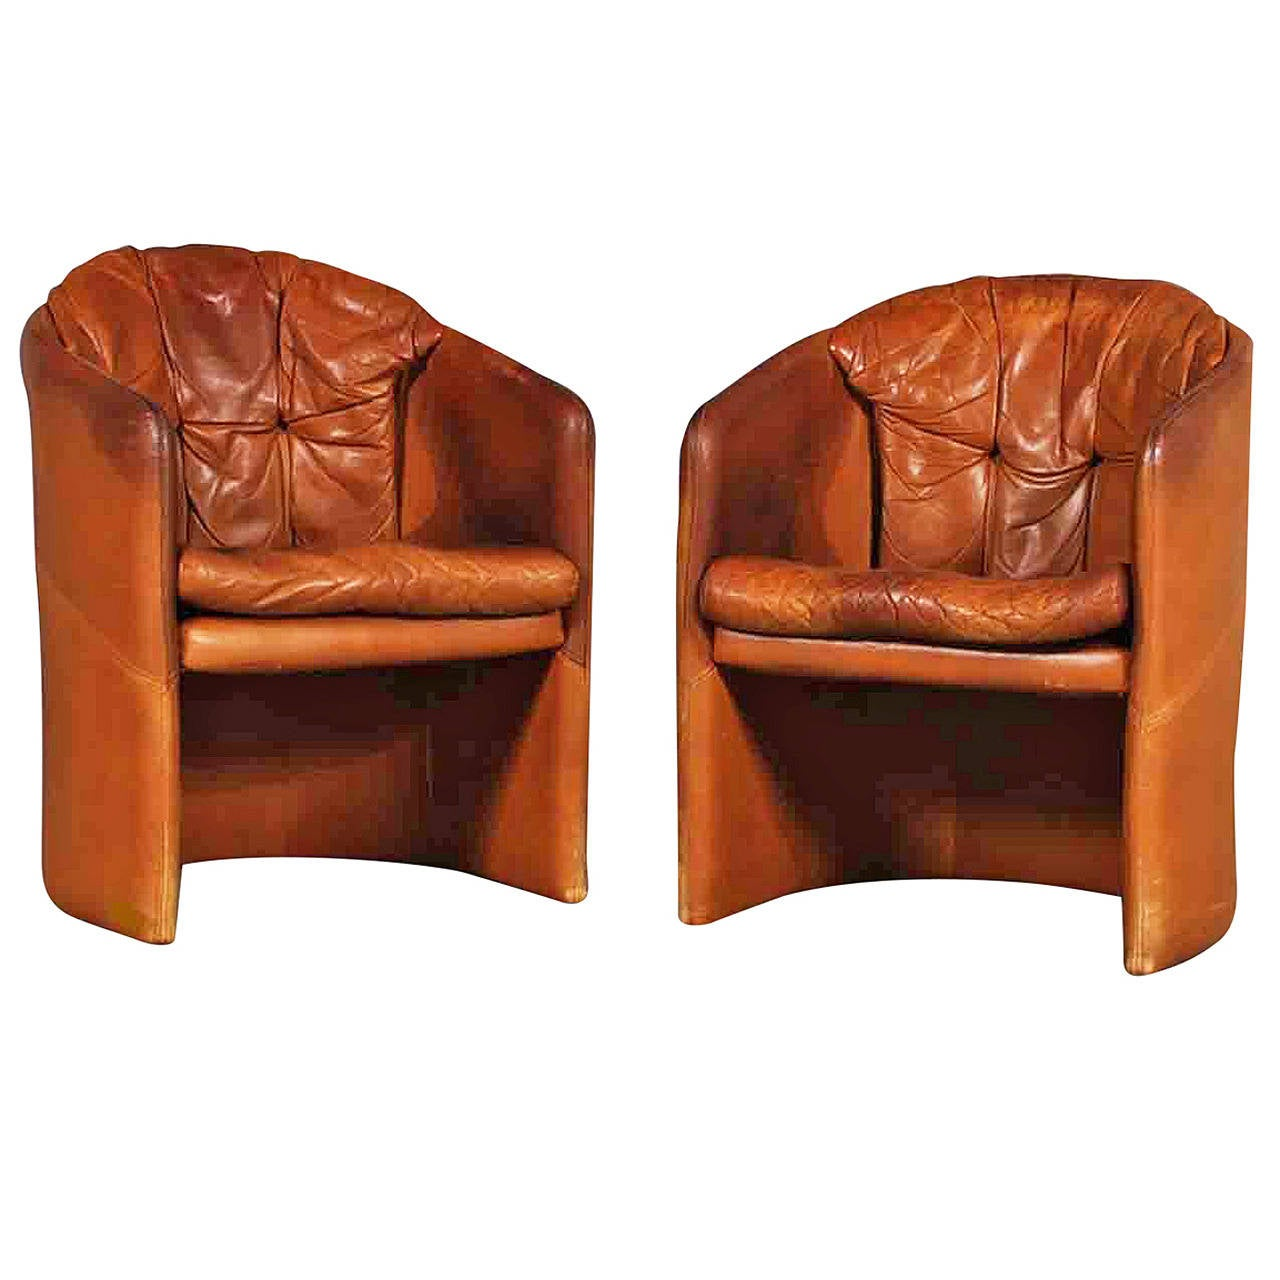 small leather accent chairs sunbrella chair covers pair of danish 1960s upholstered tub